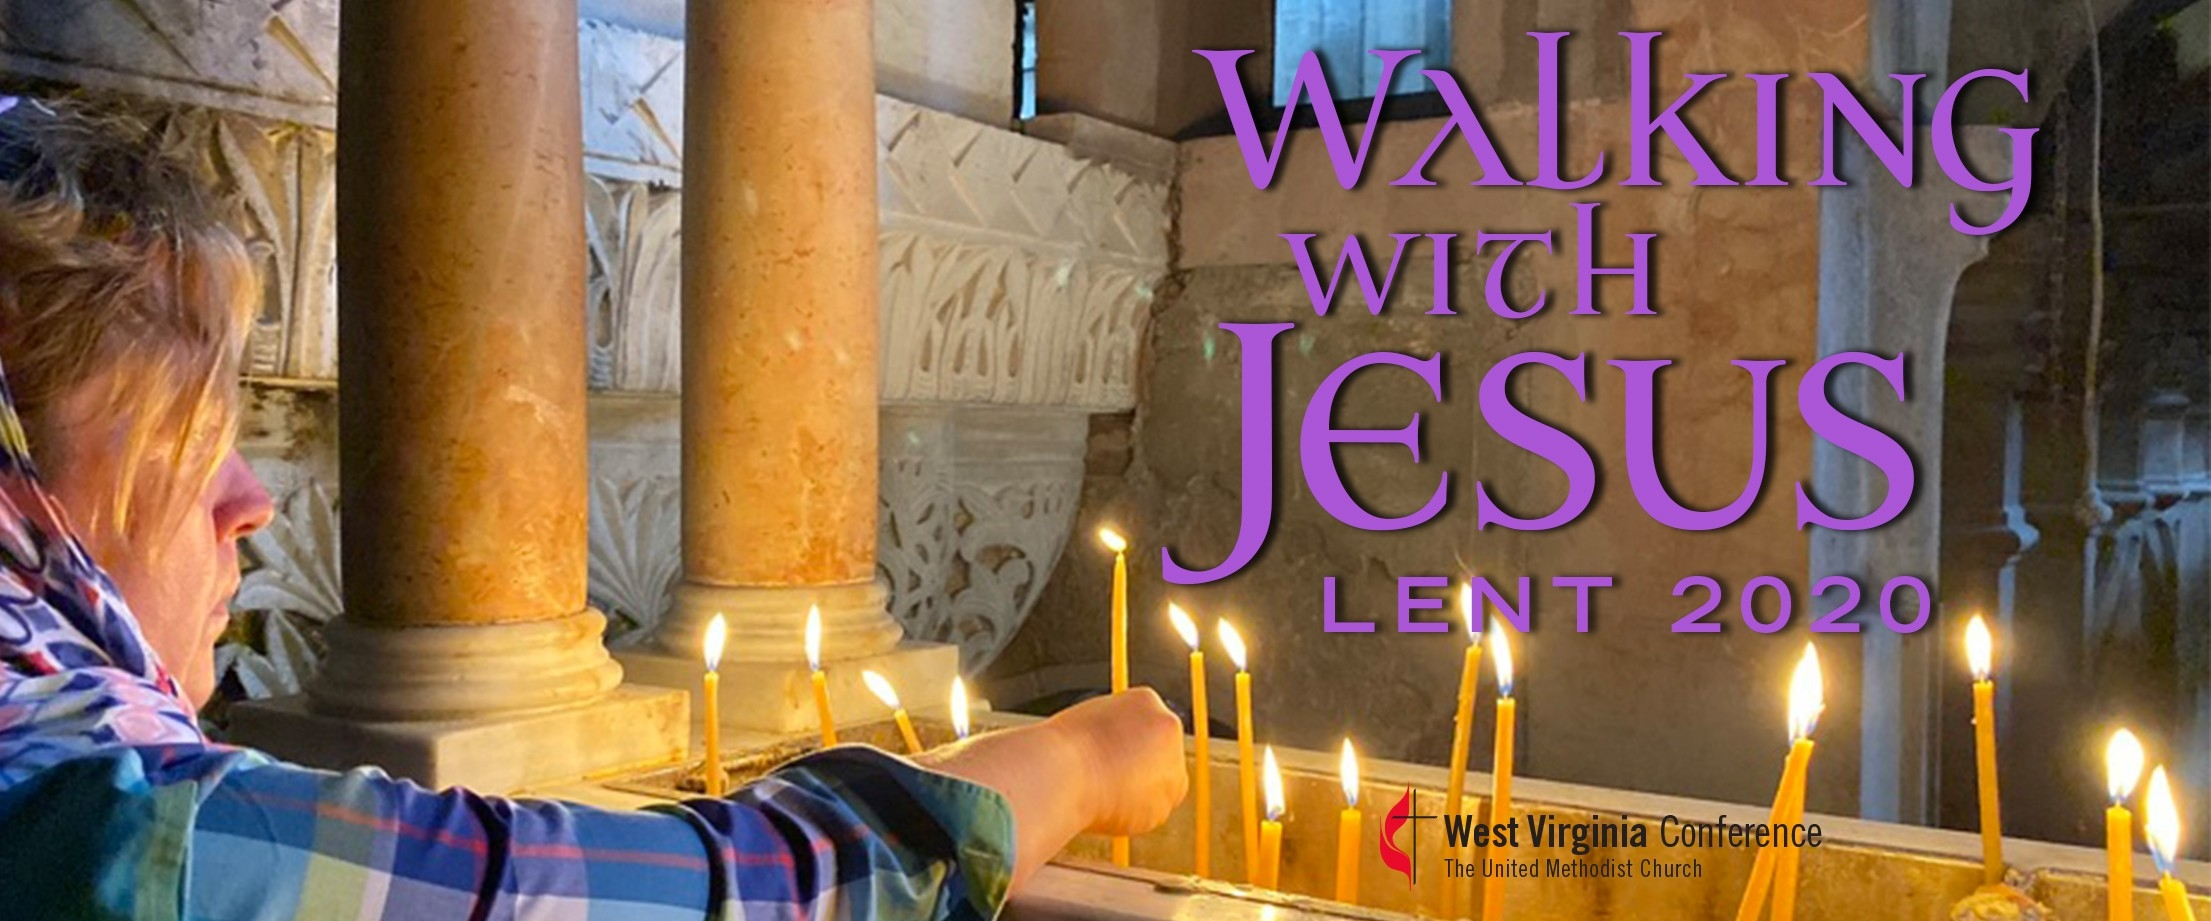 Walking With Jesus: Lent | West Virginia Conference Of The  Gbod Lectionary Helps 2020